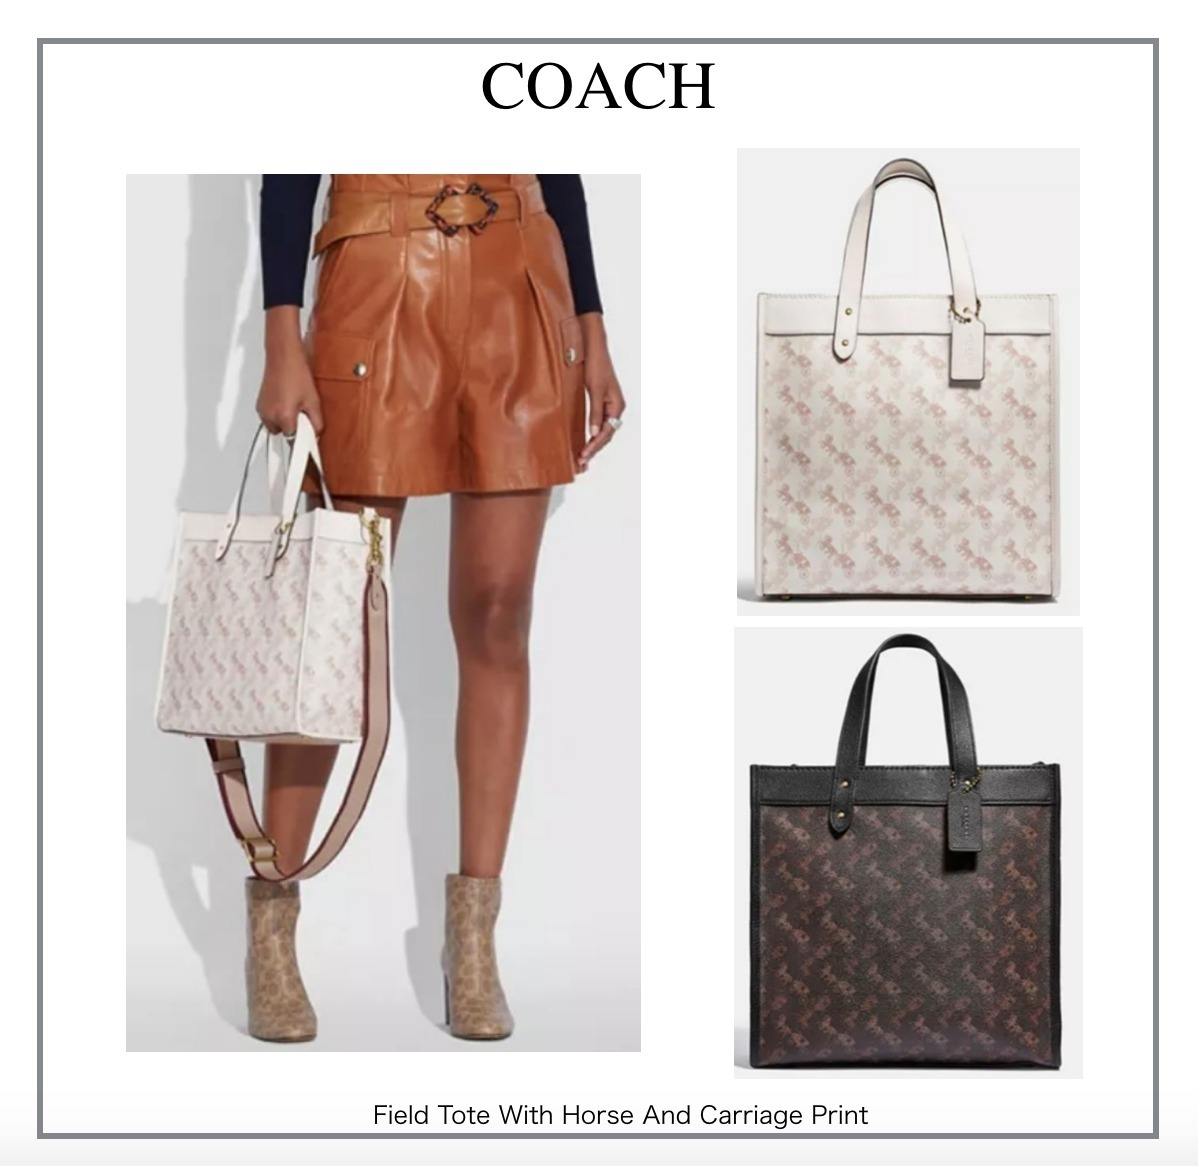 【COACH】Field Tote With Horse And Carriage Print☆ (Coach/トートバッグ) 89143